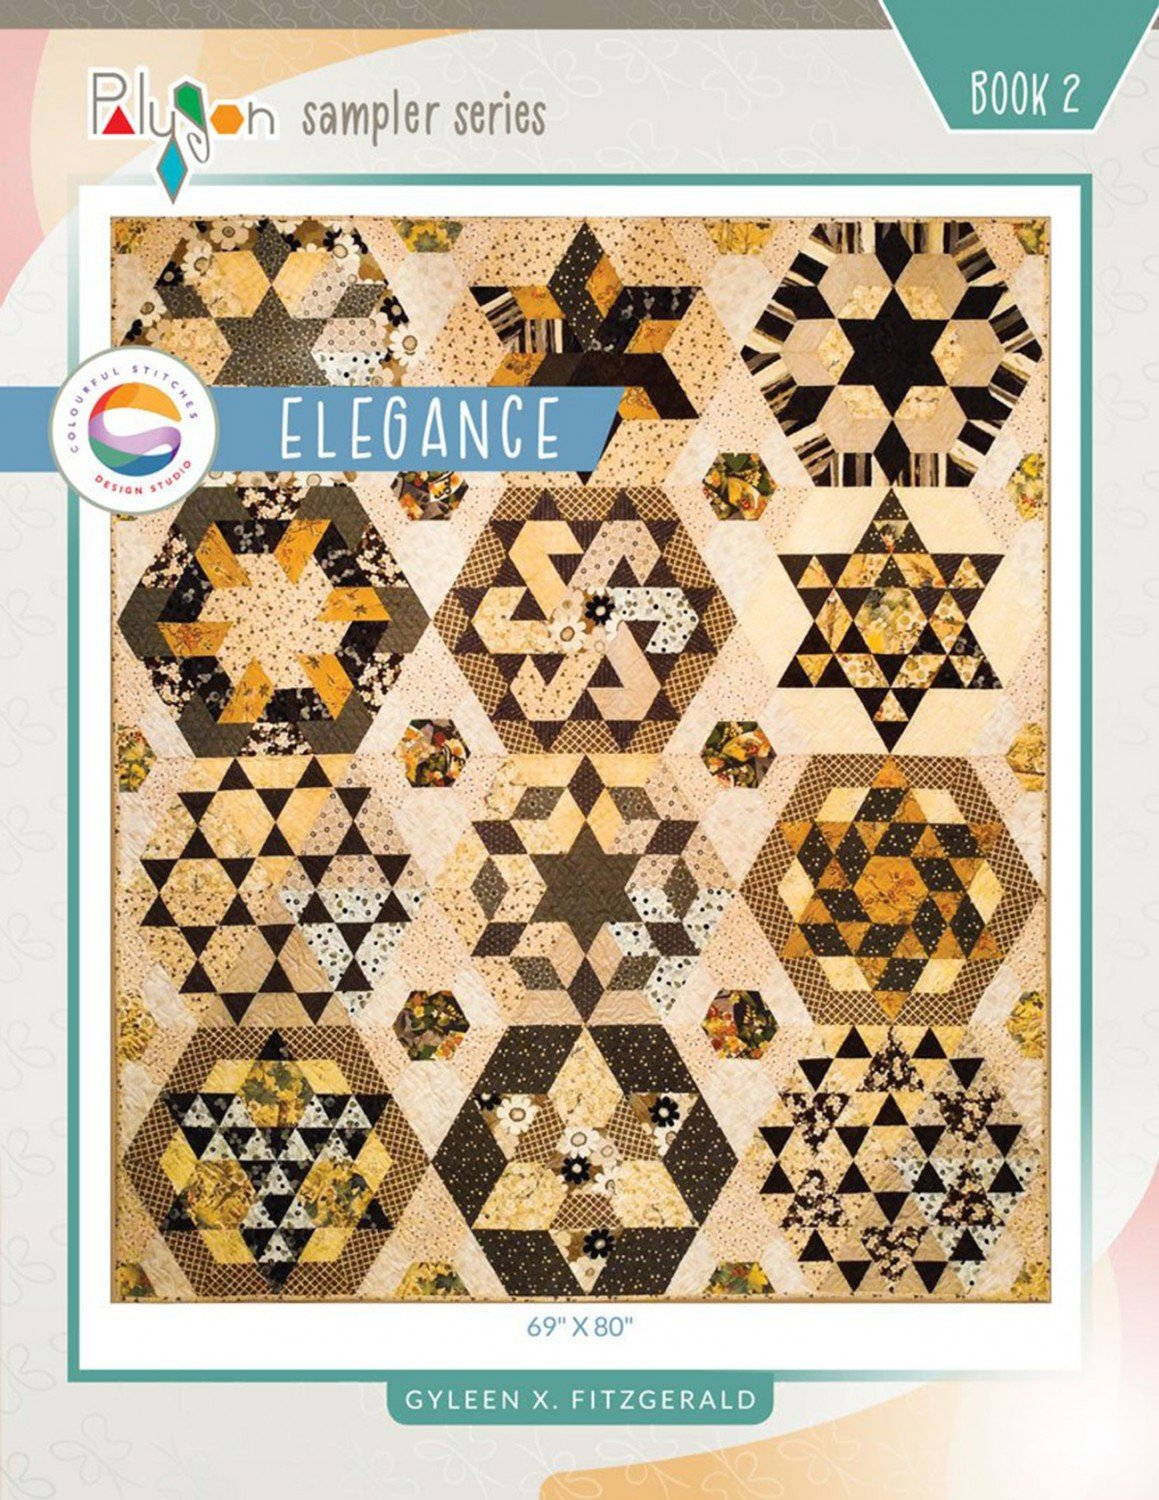 Elegance Polygon Sampler Series Book 2